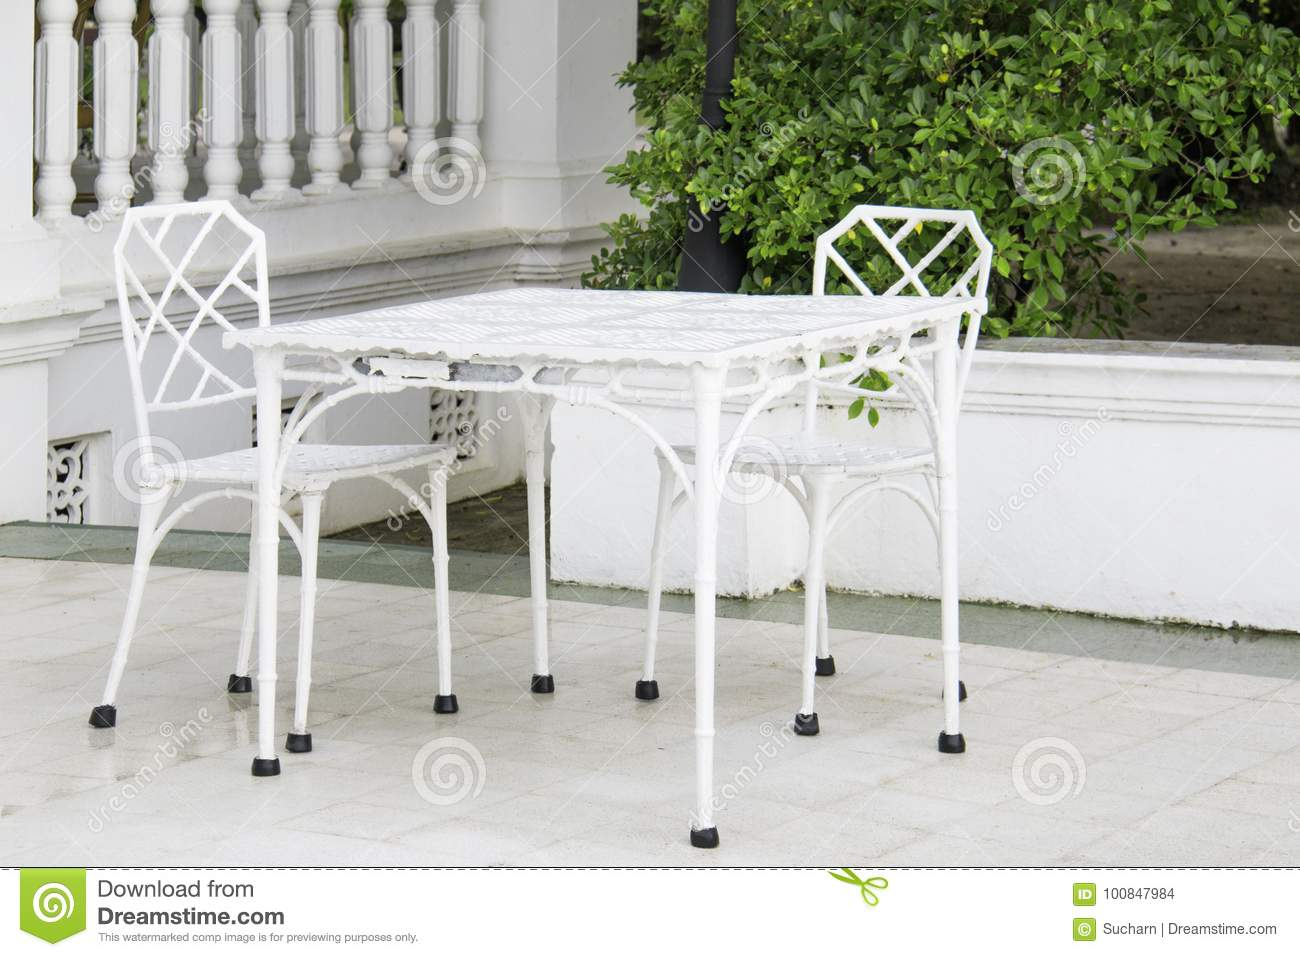 Vintage White Furniture Set In Garden Outdoor. Stock Photo - Image